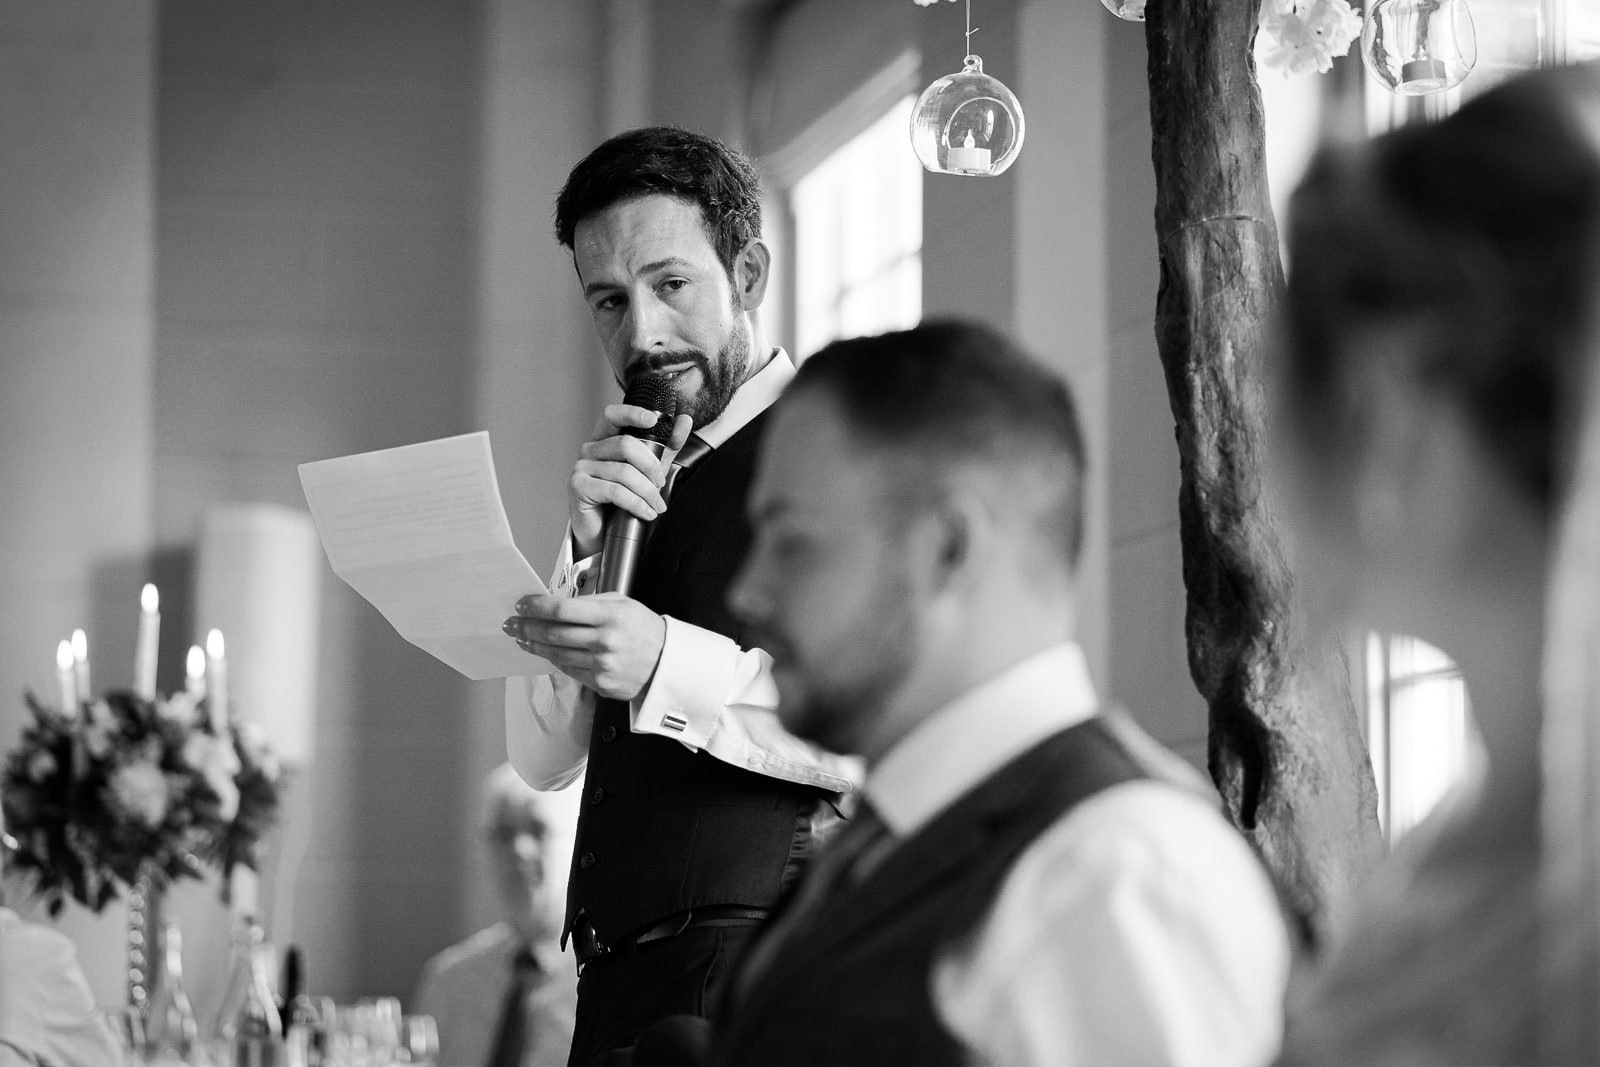 Wedding Photography at Norwood Park - best man and groom speeches at Norwood Park